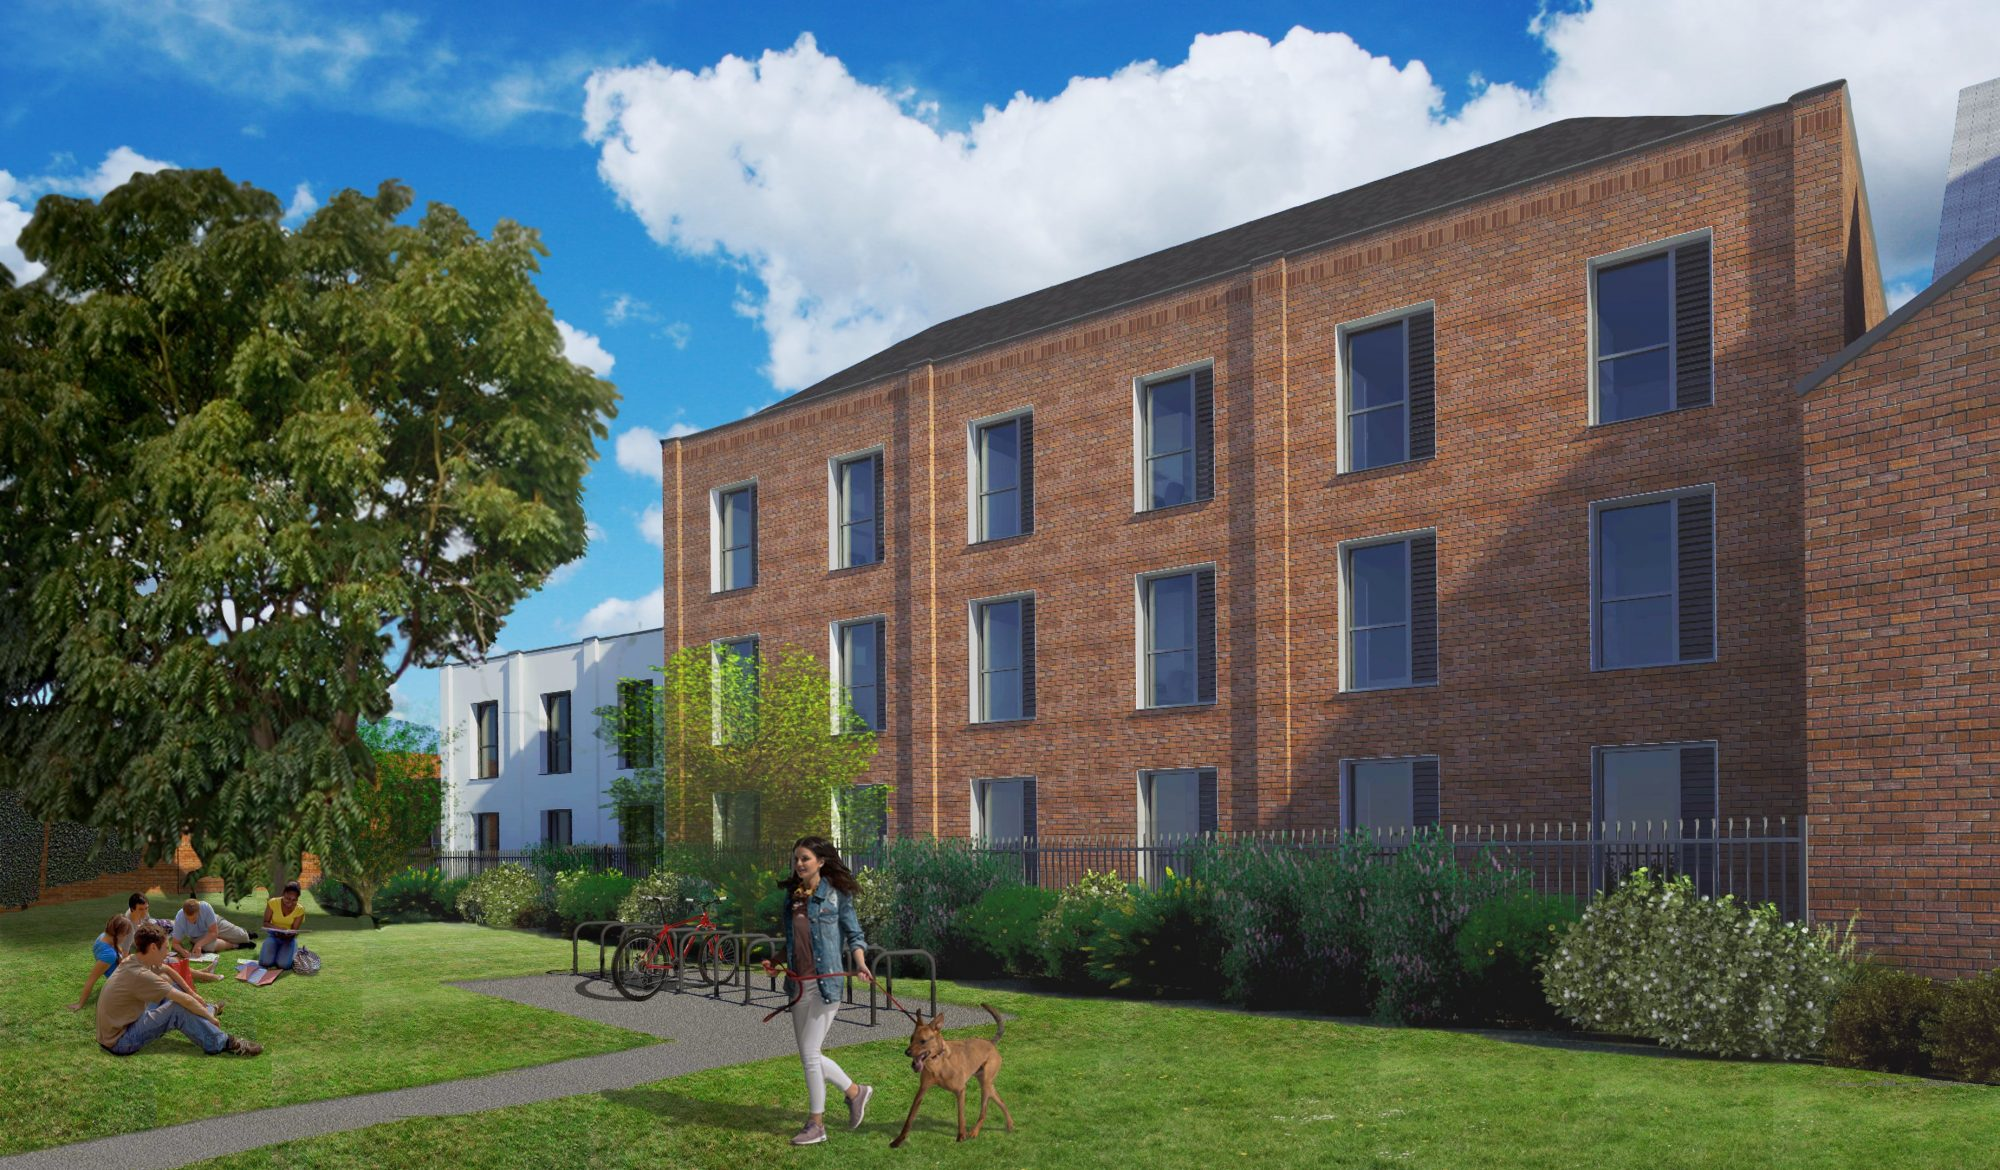 Northampton student accommodation gains approval